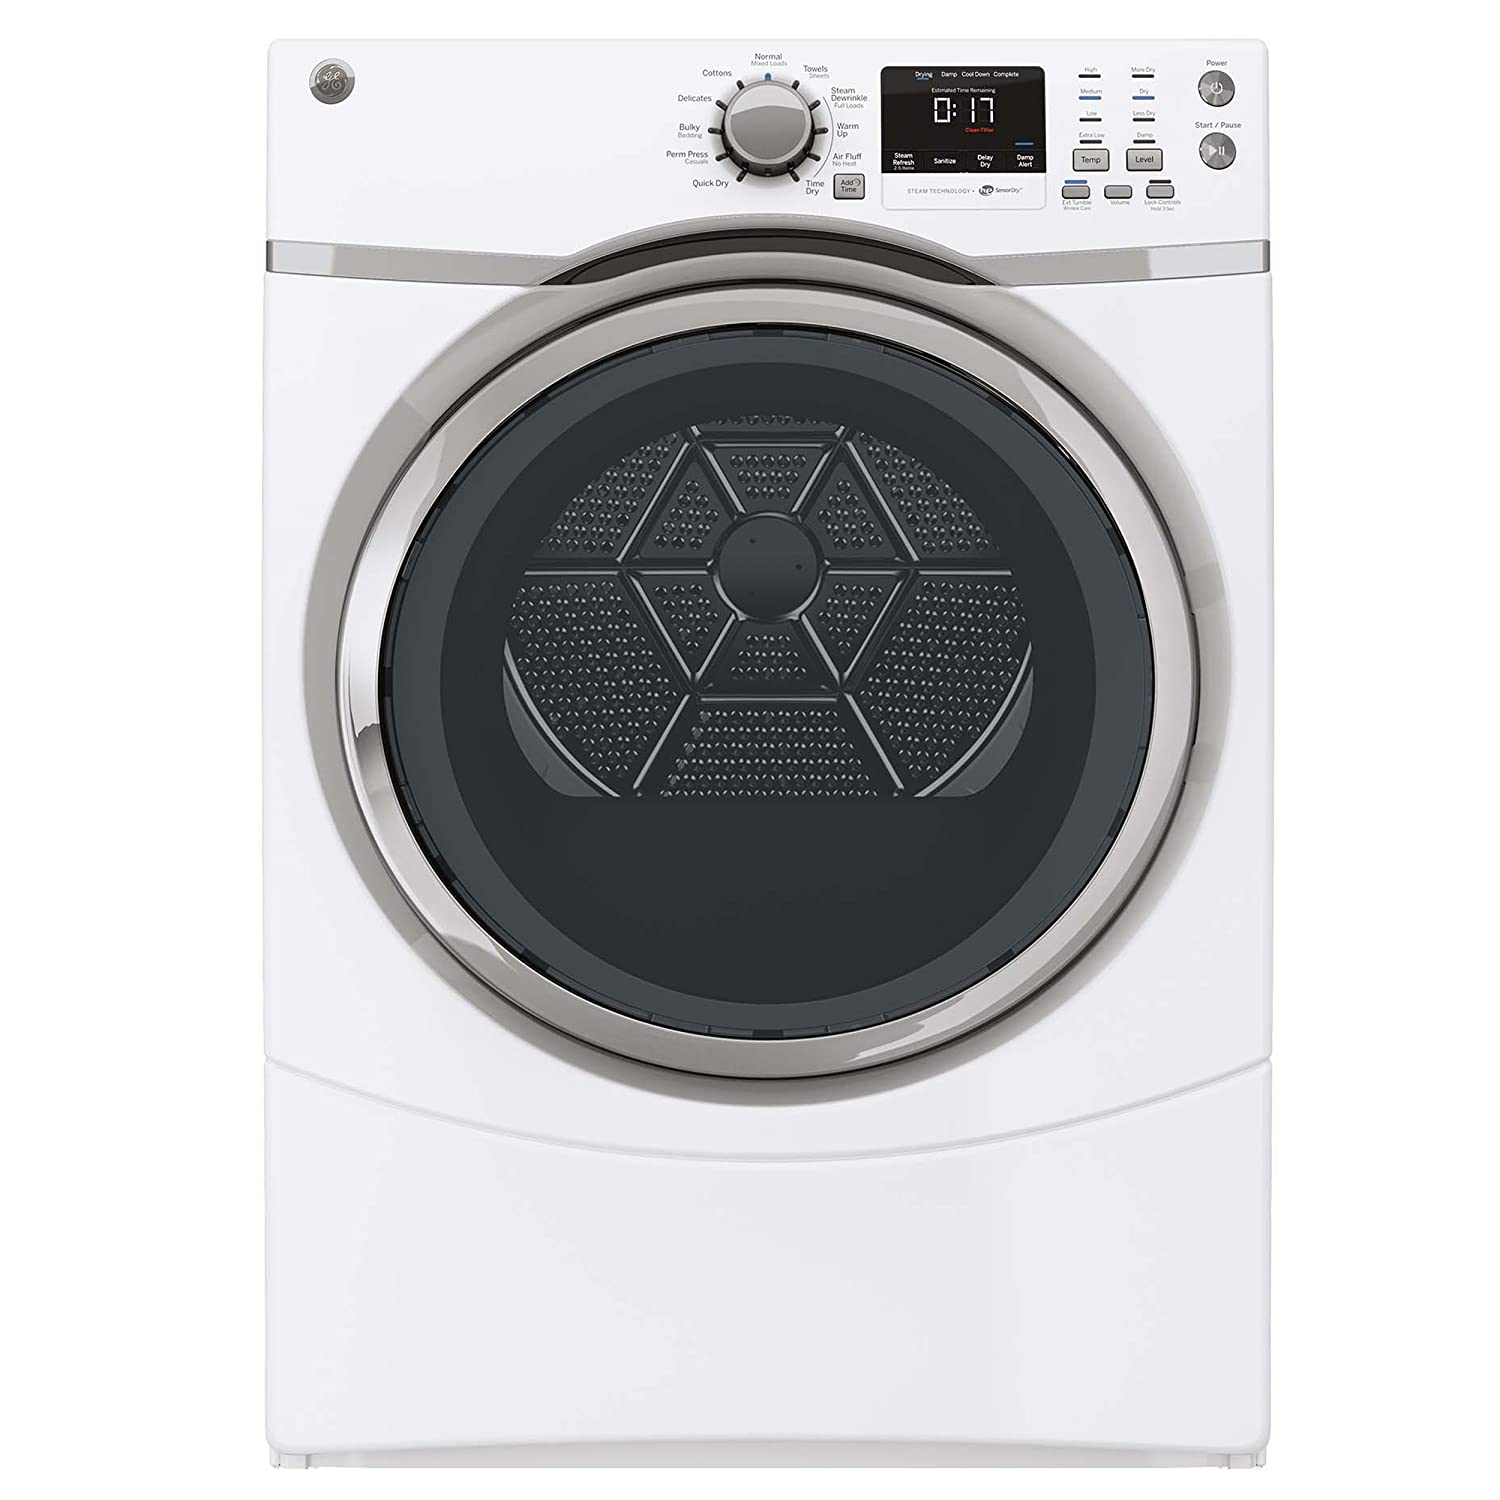 GE GFDS170GHWW 7.5 Cu. Ft. White With Steam Cycle Gas Dryer